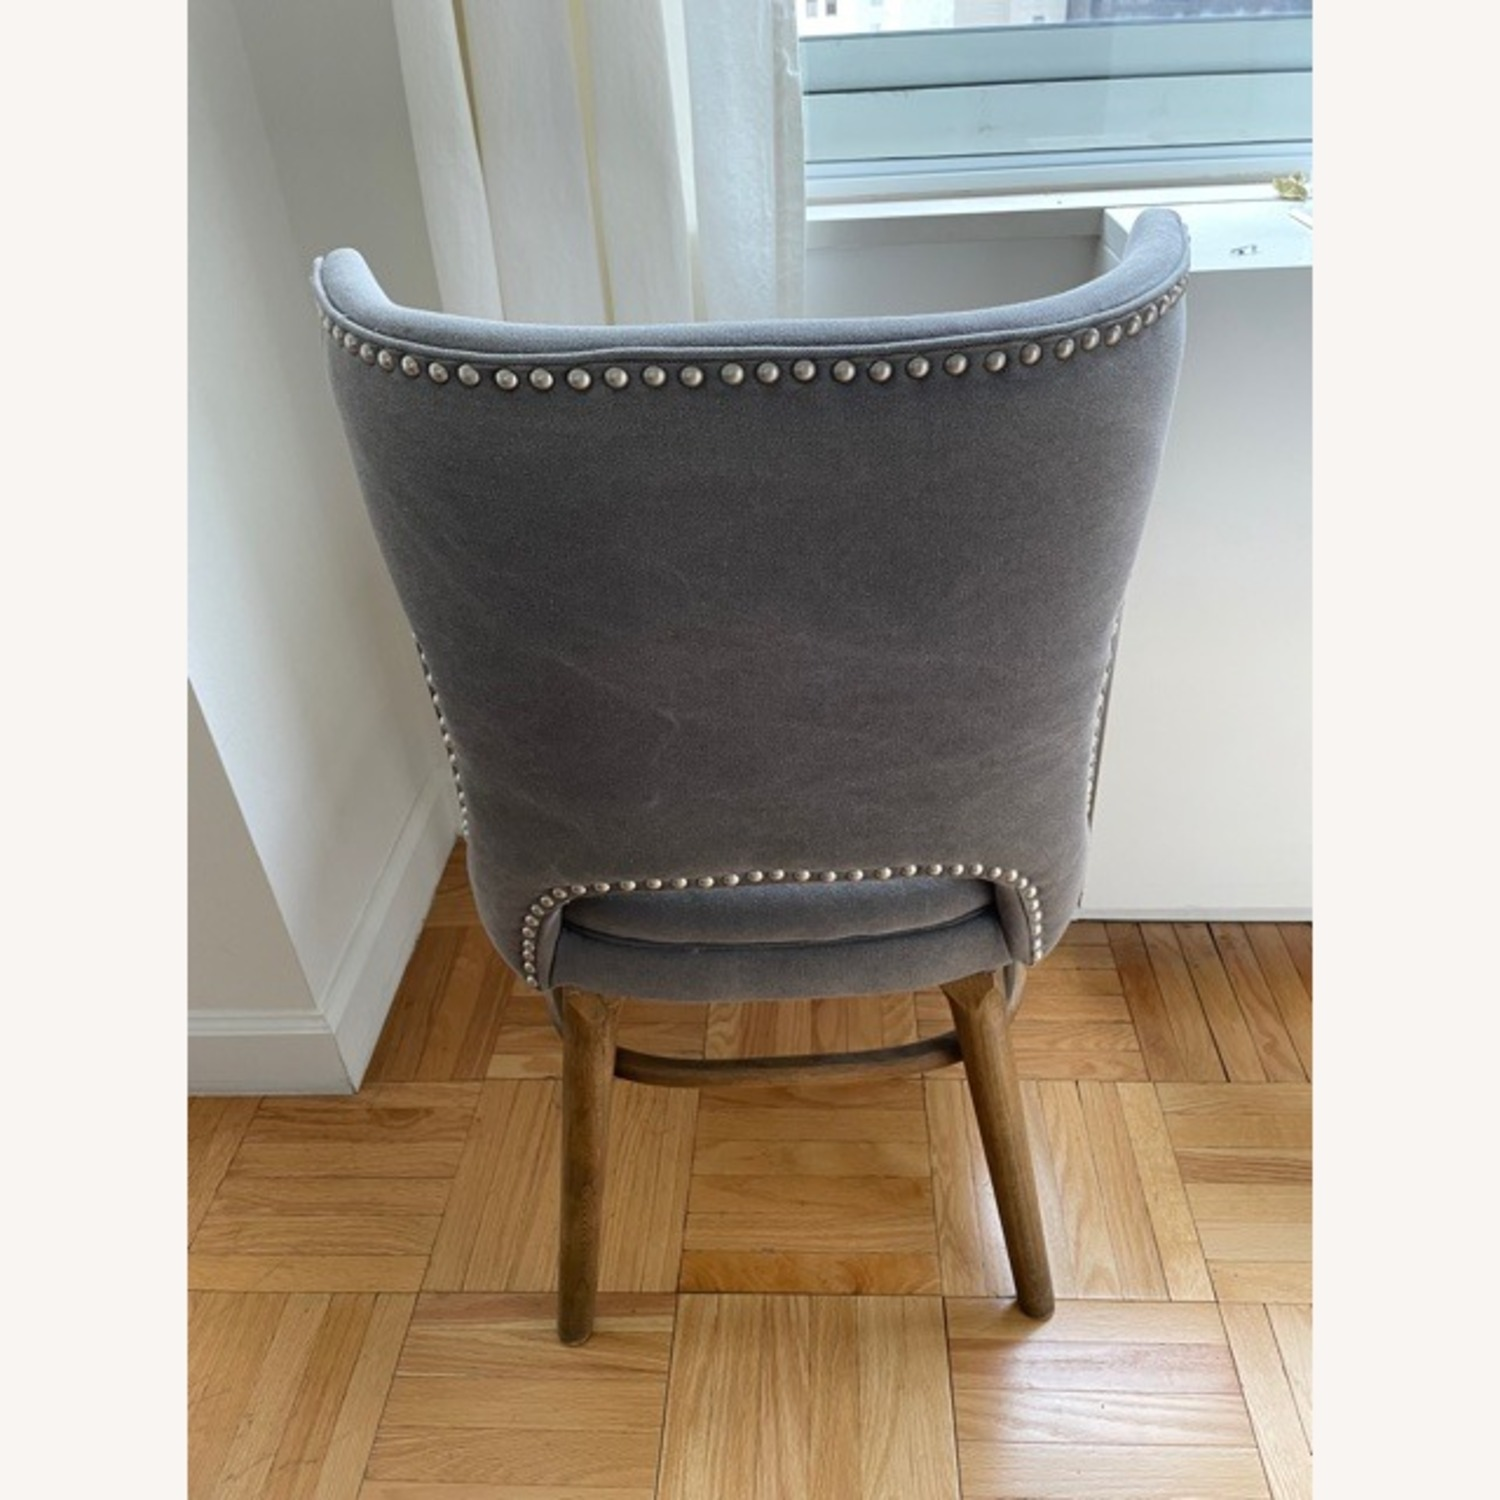 West Elm Nailhead Upholstered Chair - image-2